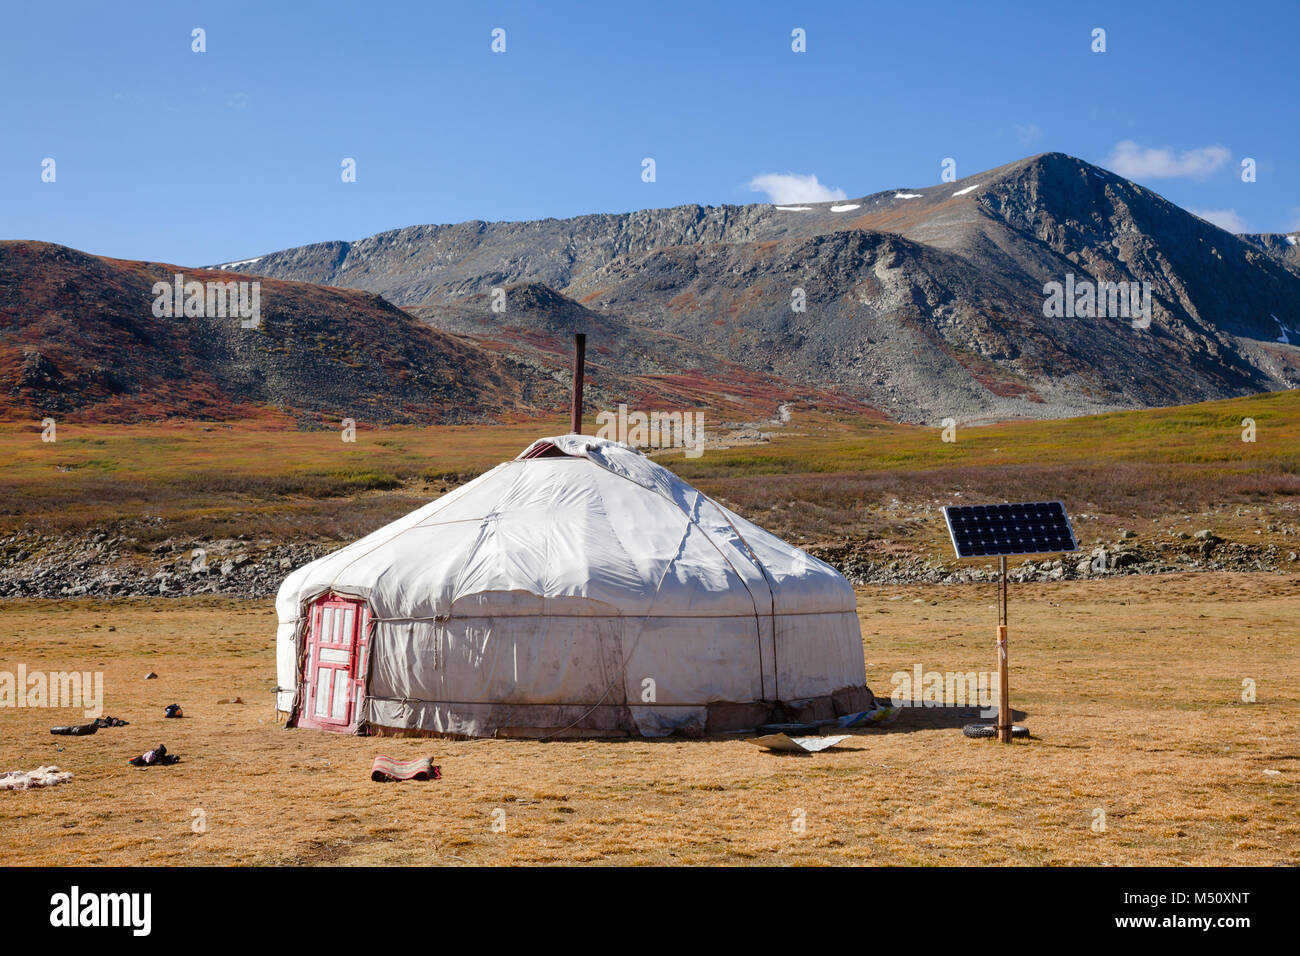 Traditional Mongolian portable round tent ger covered with white outer cover powered by solar panel in Altai Mountains - Stock Image